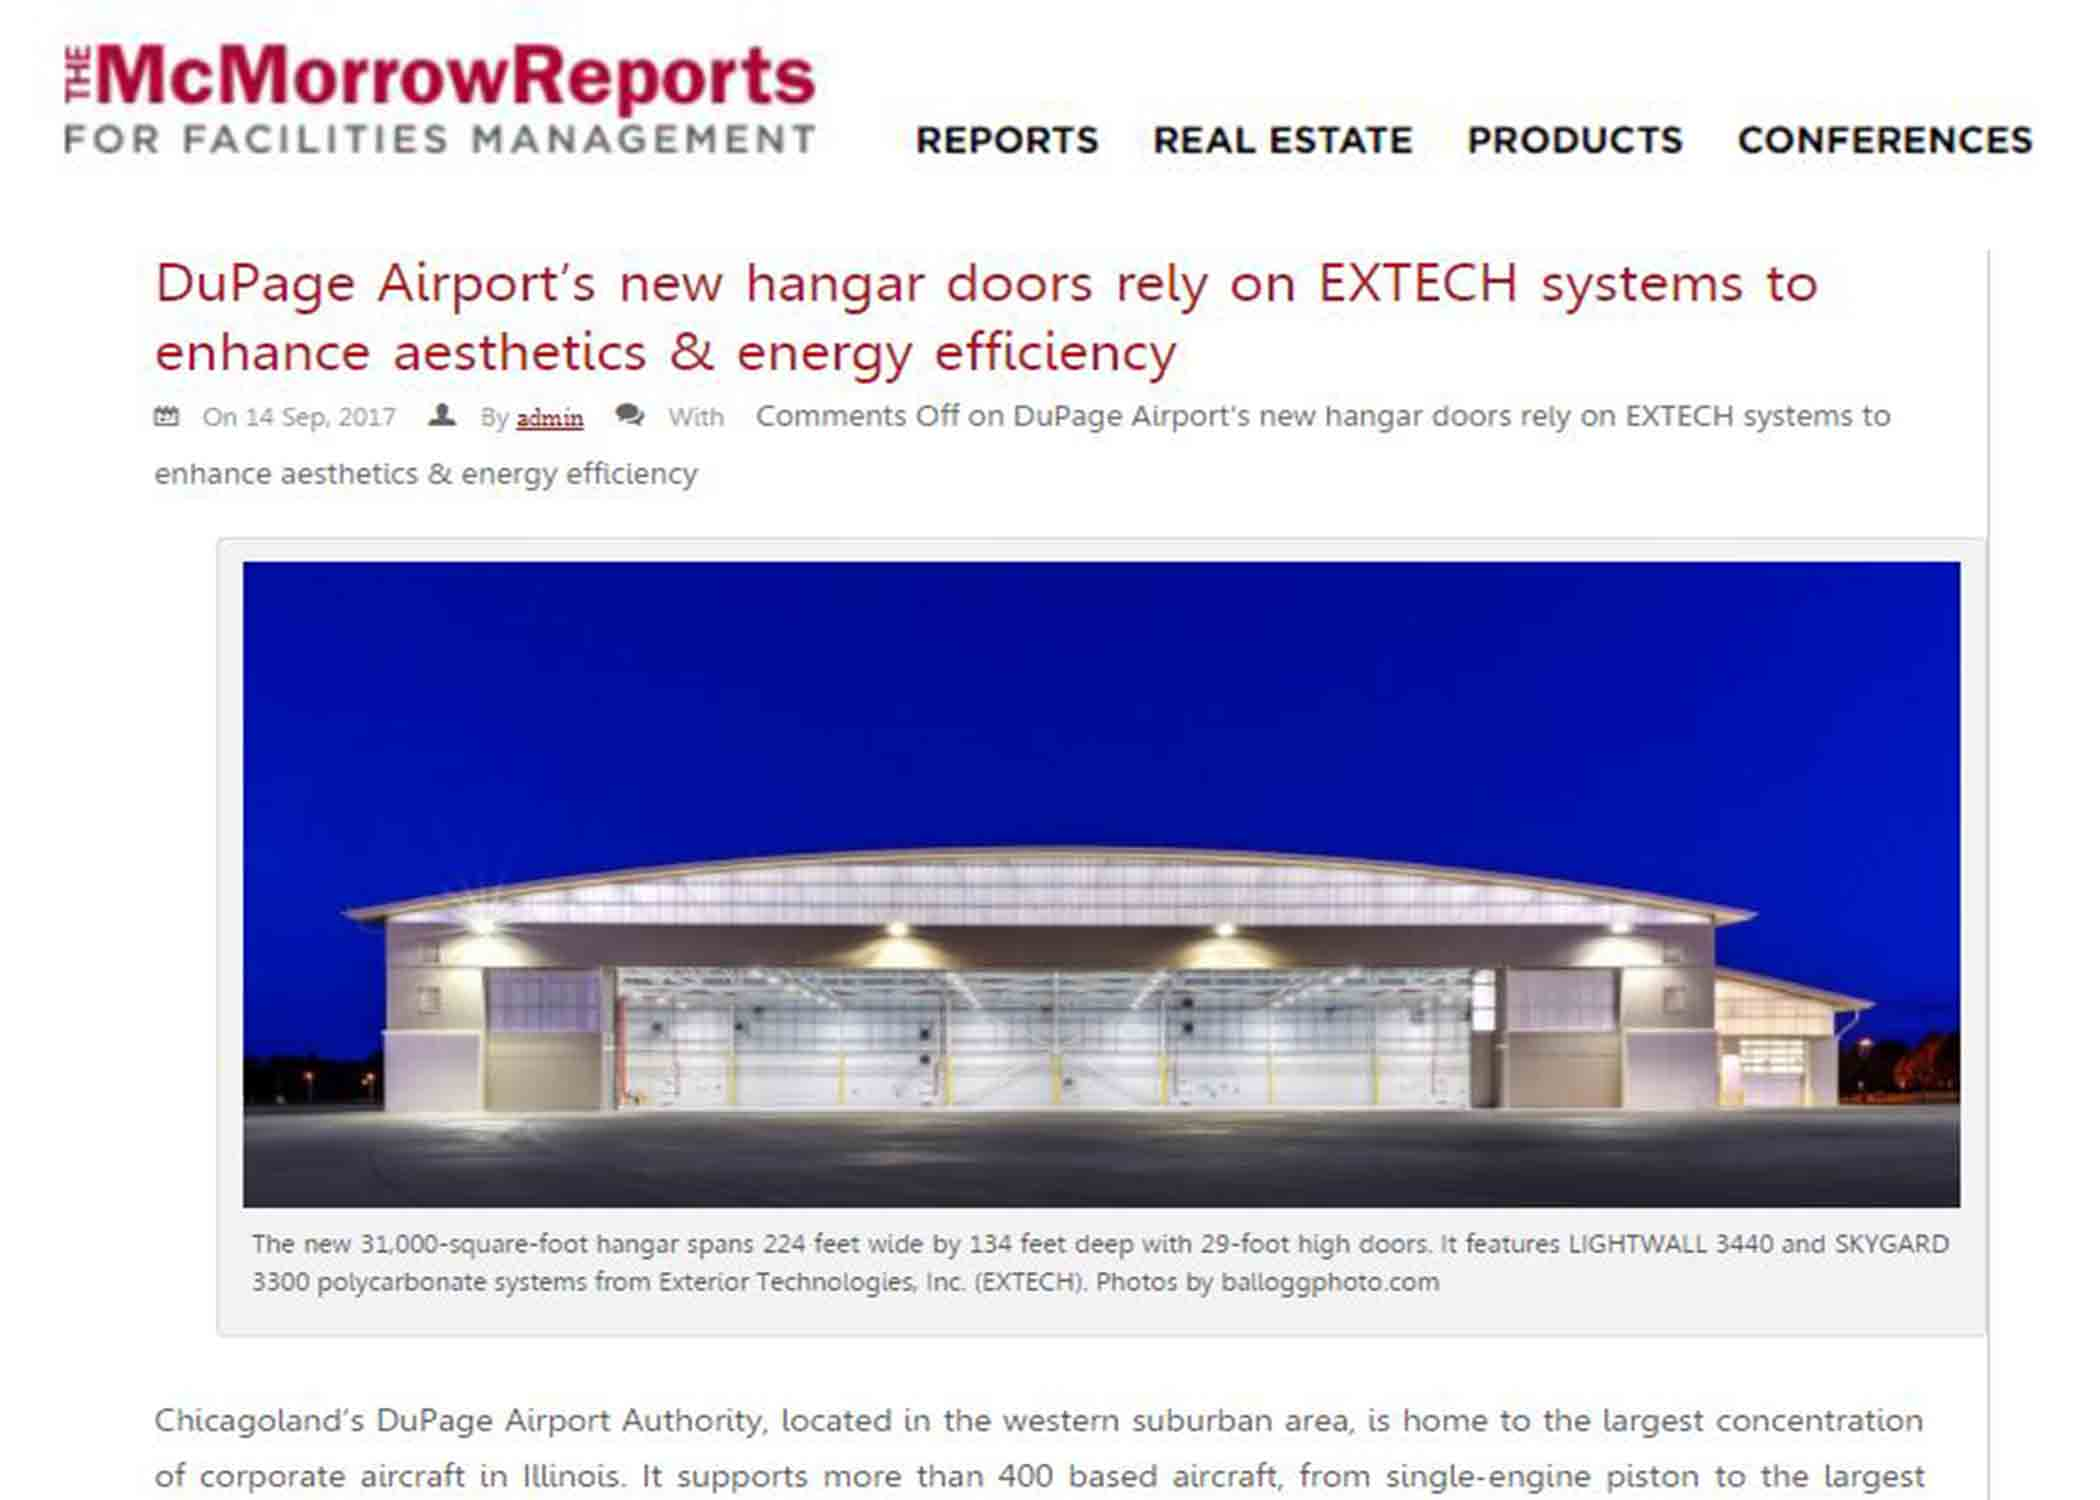 EXTECH's work at DuPage Airport is featured in the McMorrow Reports